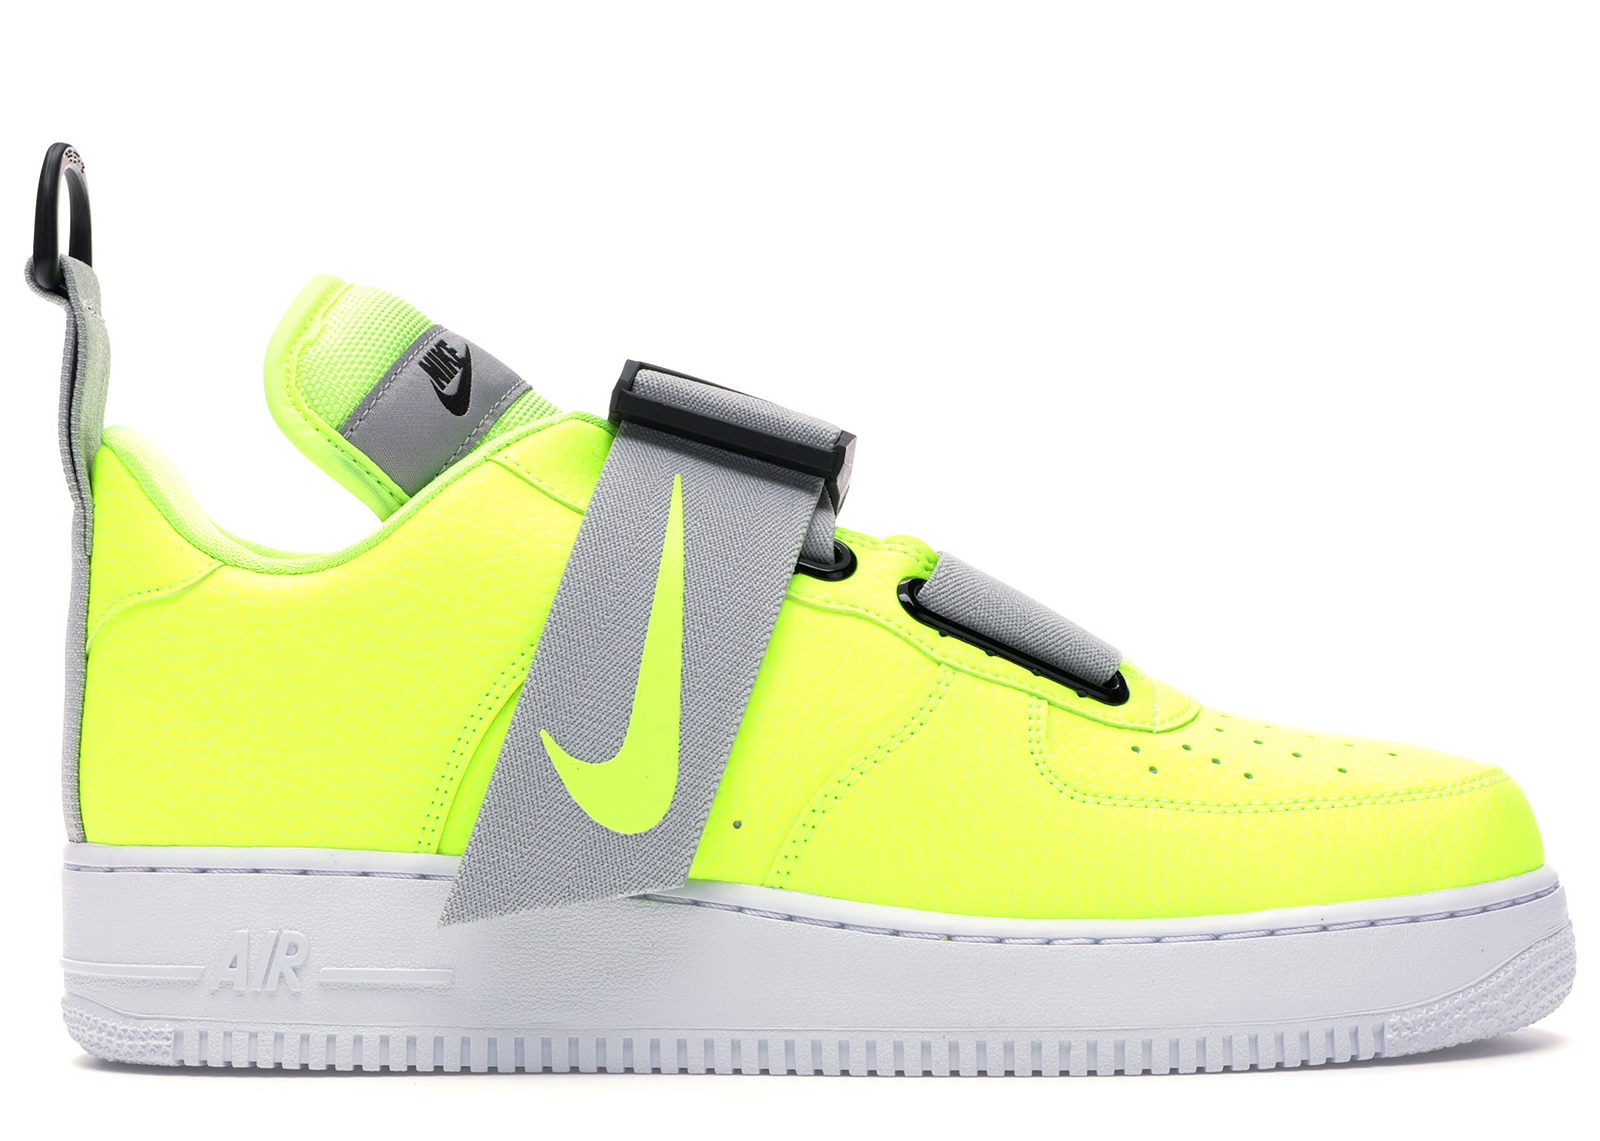 Air Force 1 Utility Volt 2